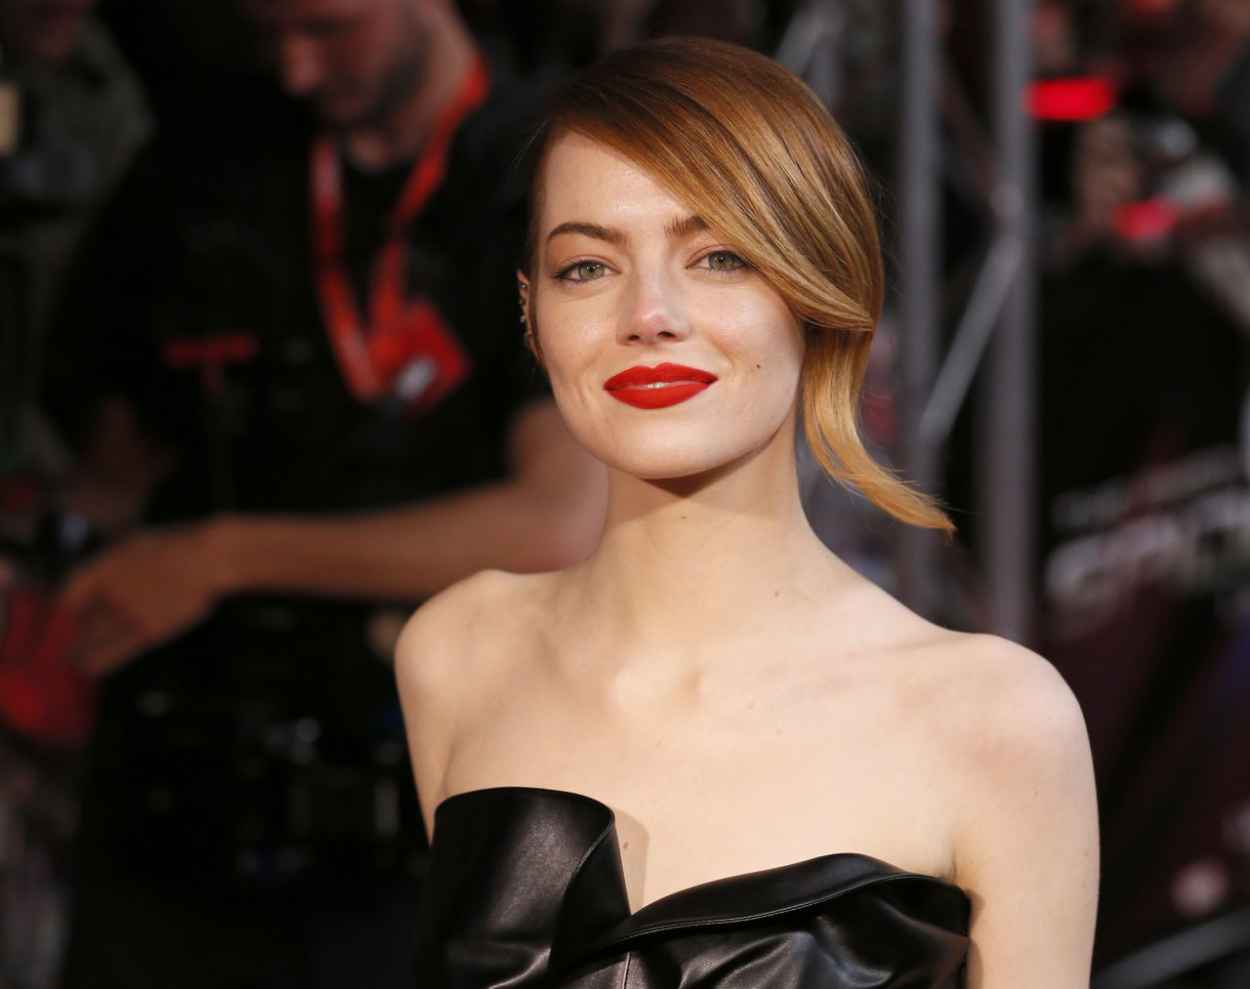 Emma Stone Wearing Lanvin Leather Dress - The Amazing Spider-Man 2 Premiere in Paris-1